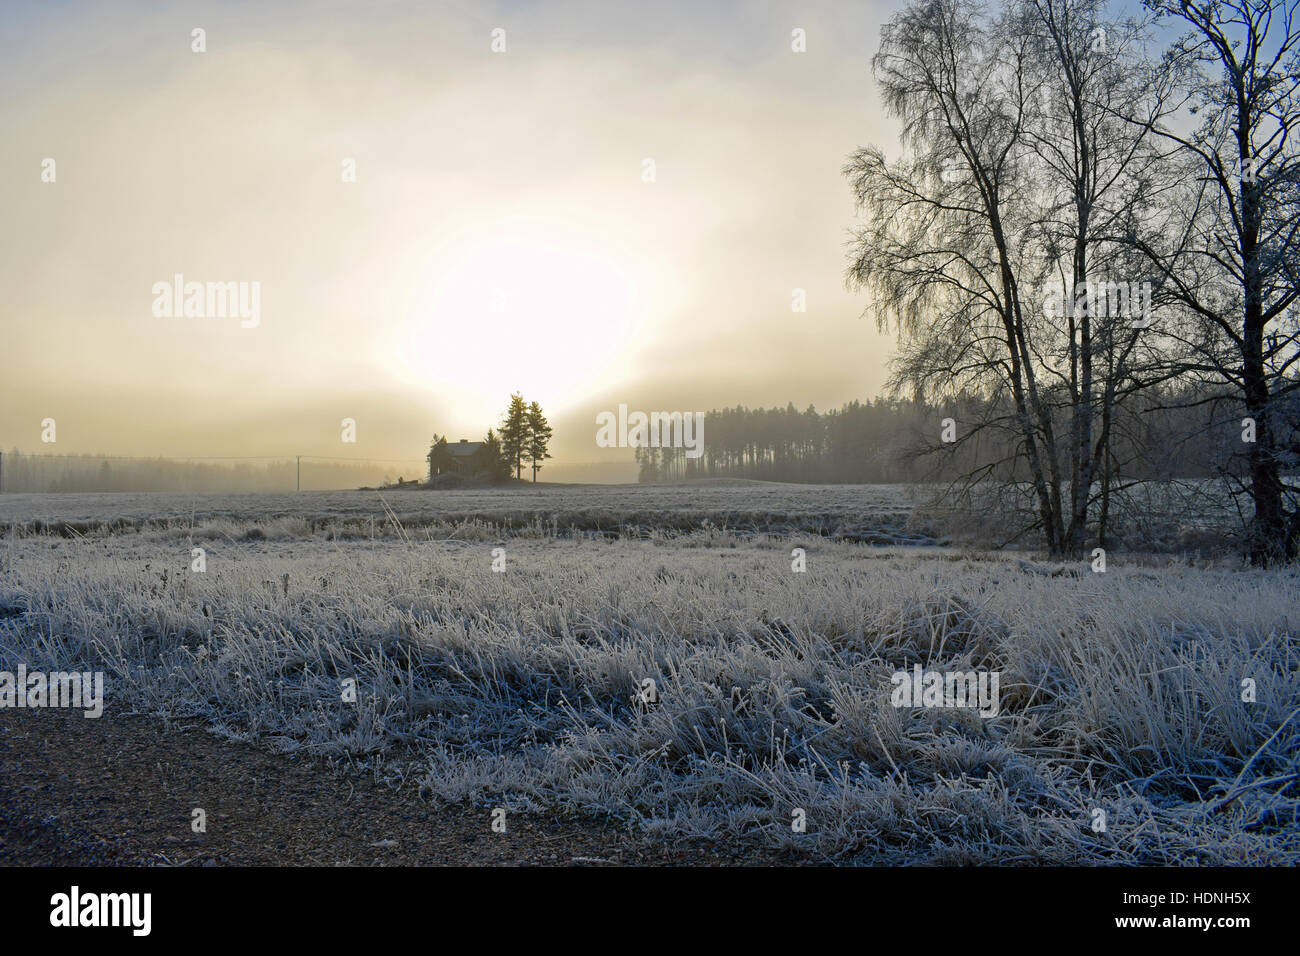 Beautiful cold landscape with frosty grass, deserted house and sun shining through clouds and fog. - Stock Image